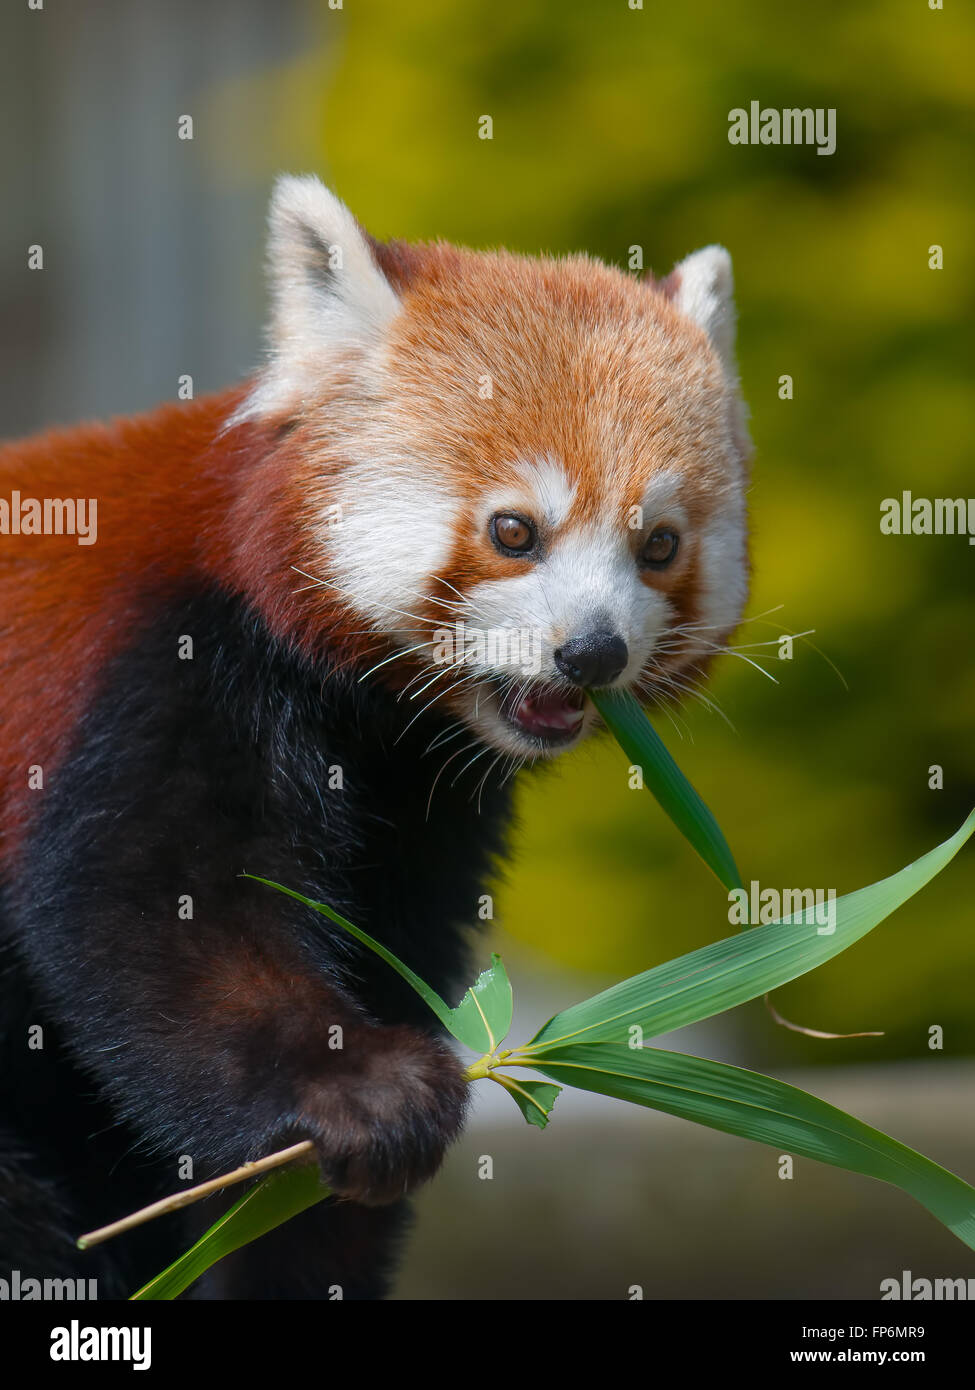 Red Panda eating the Leaves from Bamboo shoots - Eats shoots and leaves - Stock Image